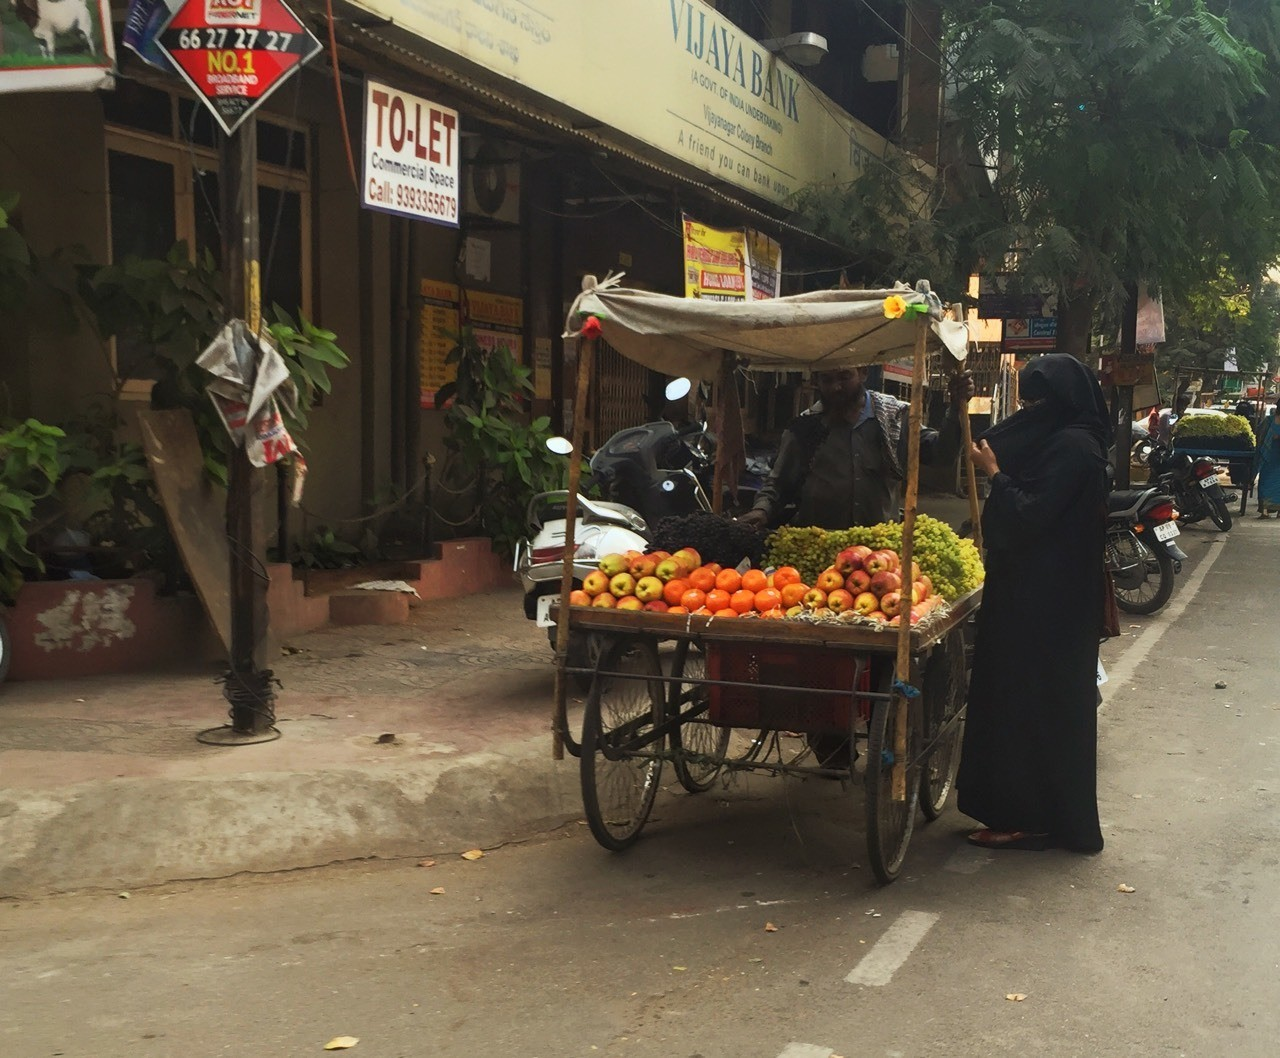 The fruit vendor #iphoneography #streetphotography #india